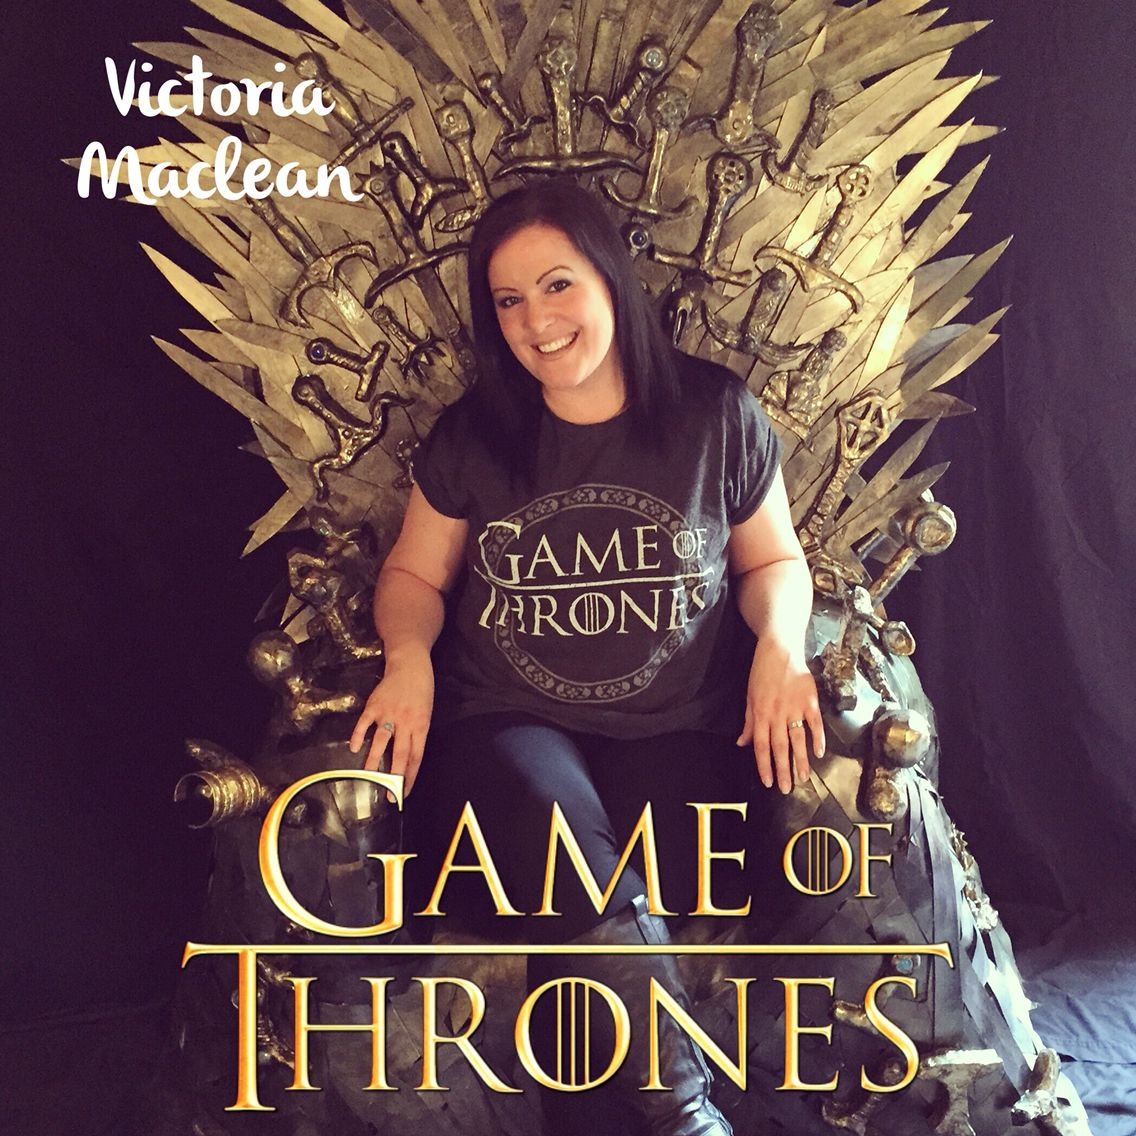 Victoria Maclean on the Iron Thrones